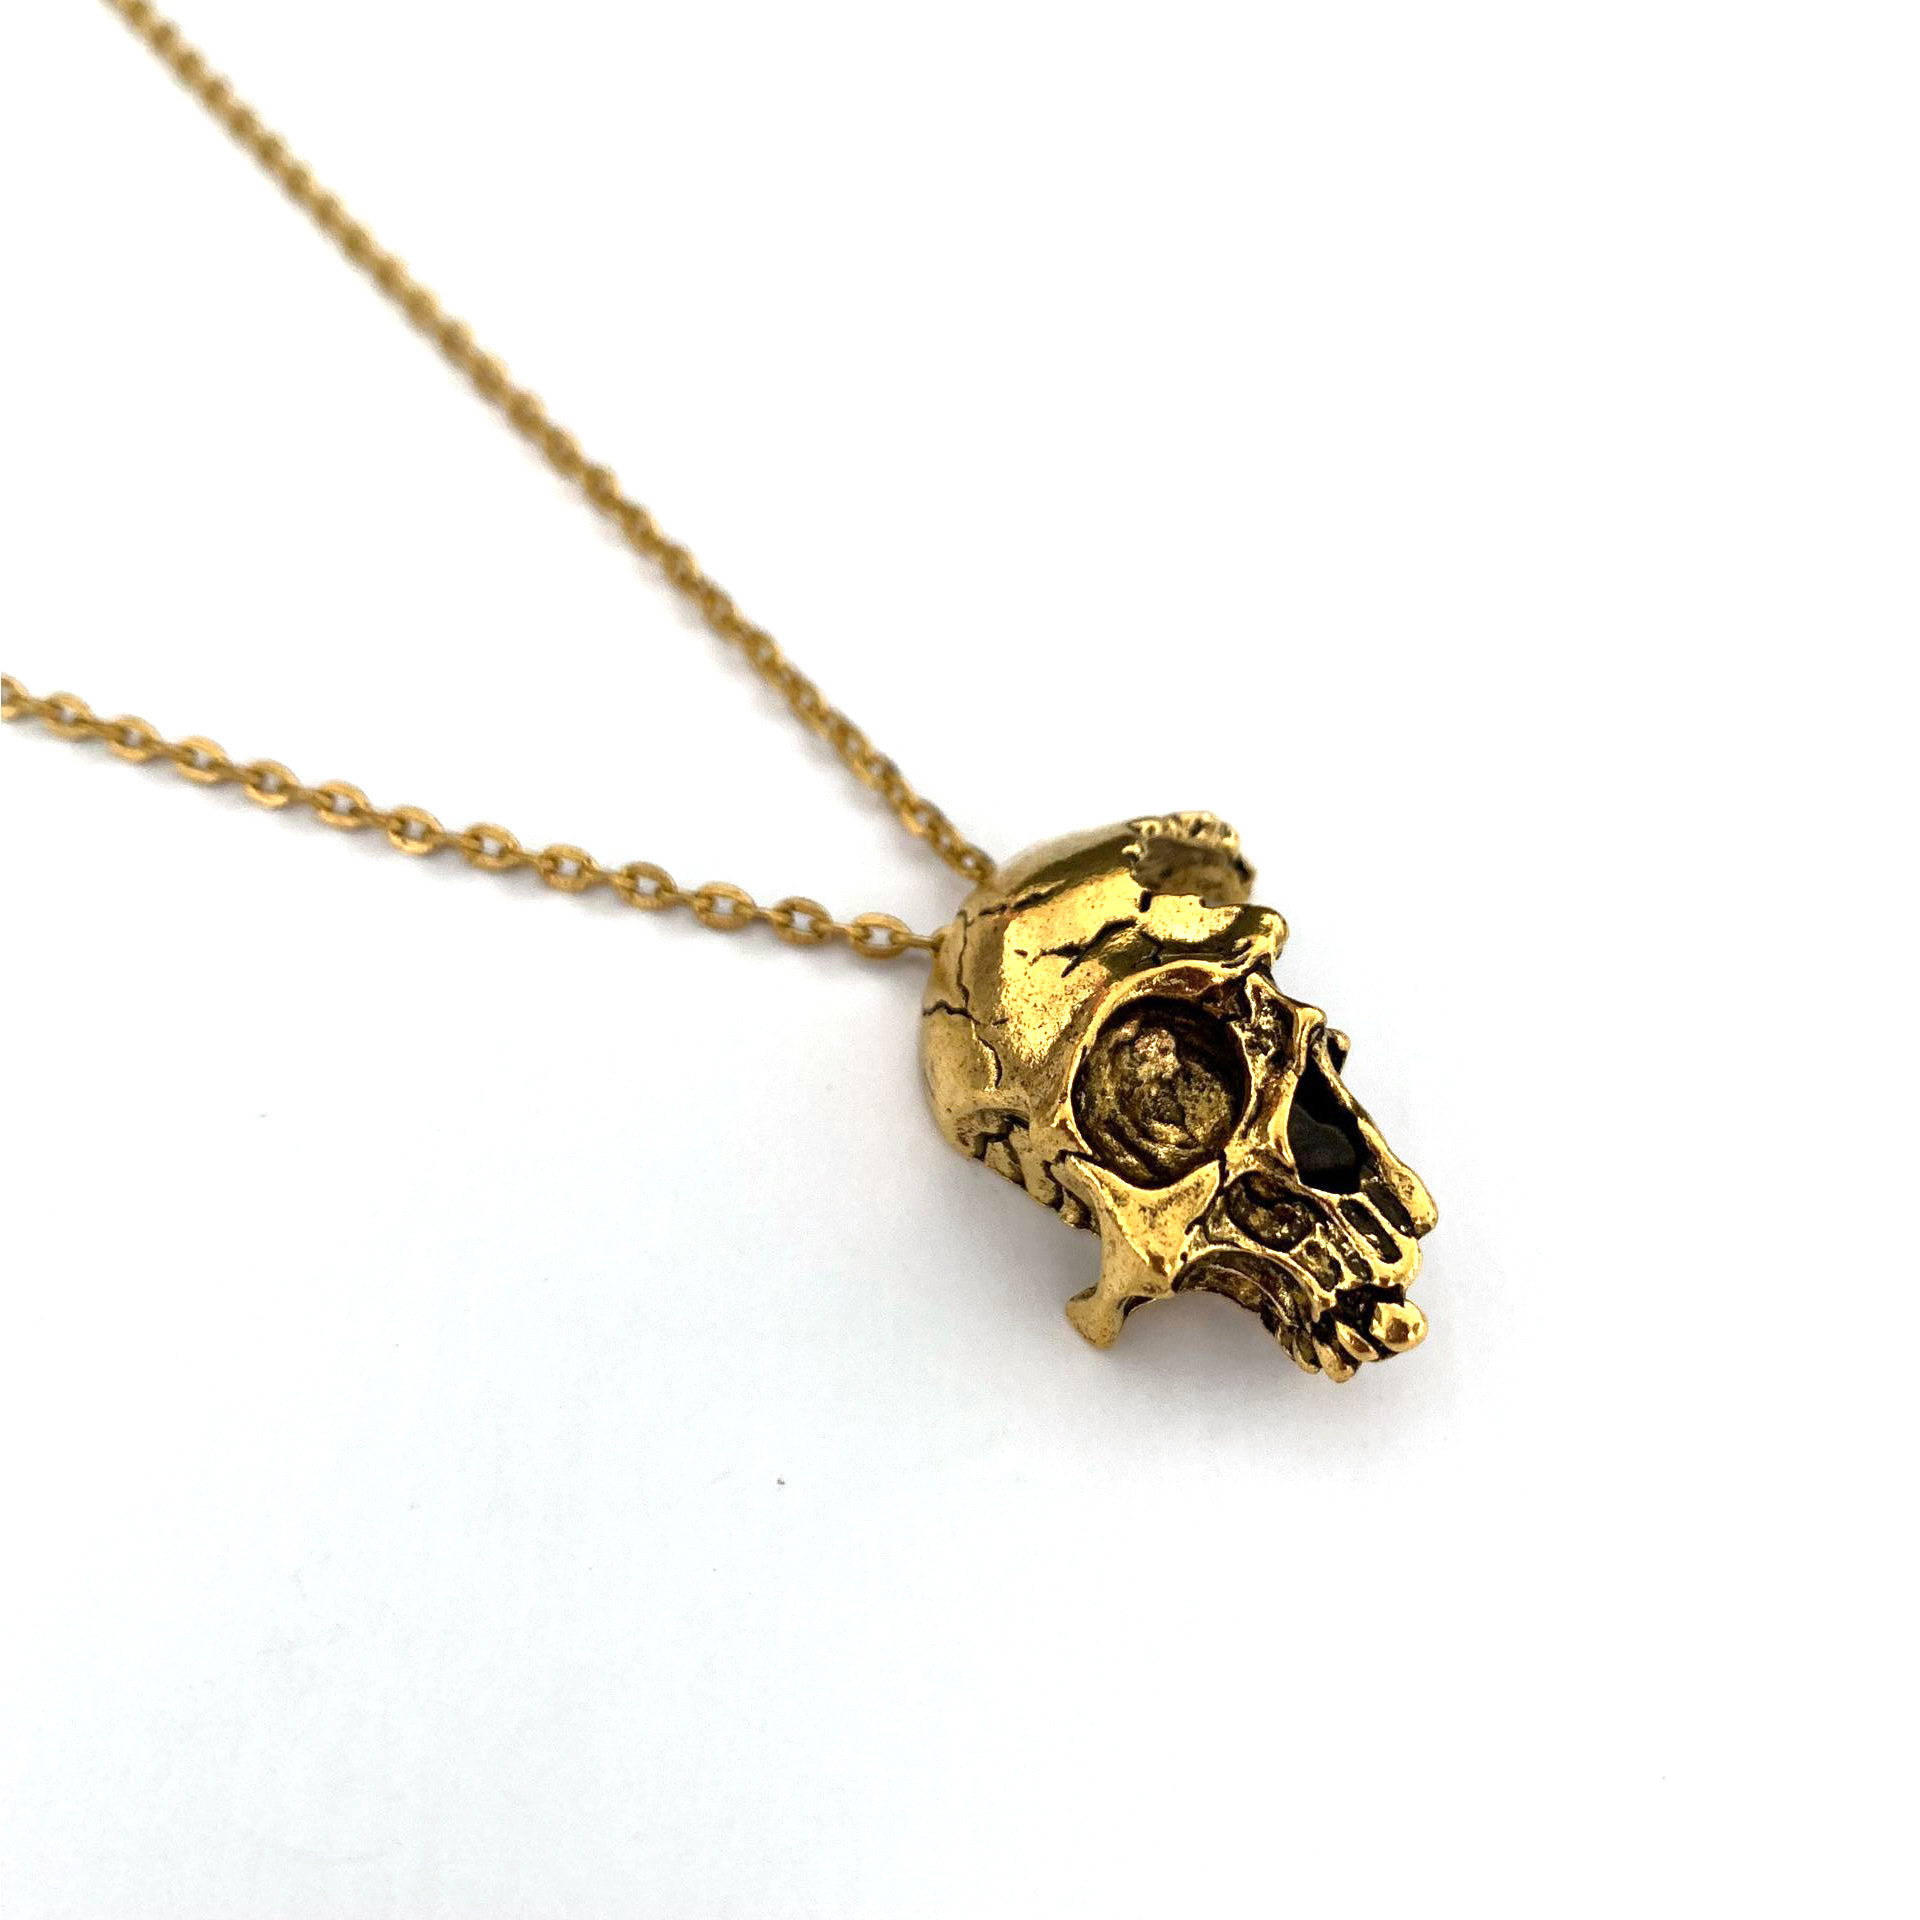 Edgy Cracked Half Skull Pendant Cable Chain Necklace for Dark Aesthetic Attires